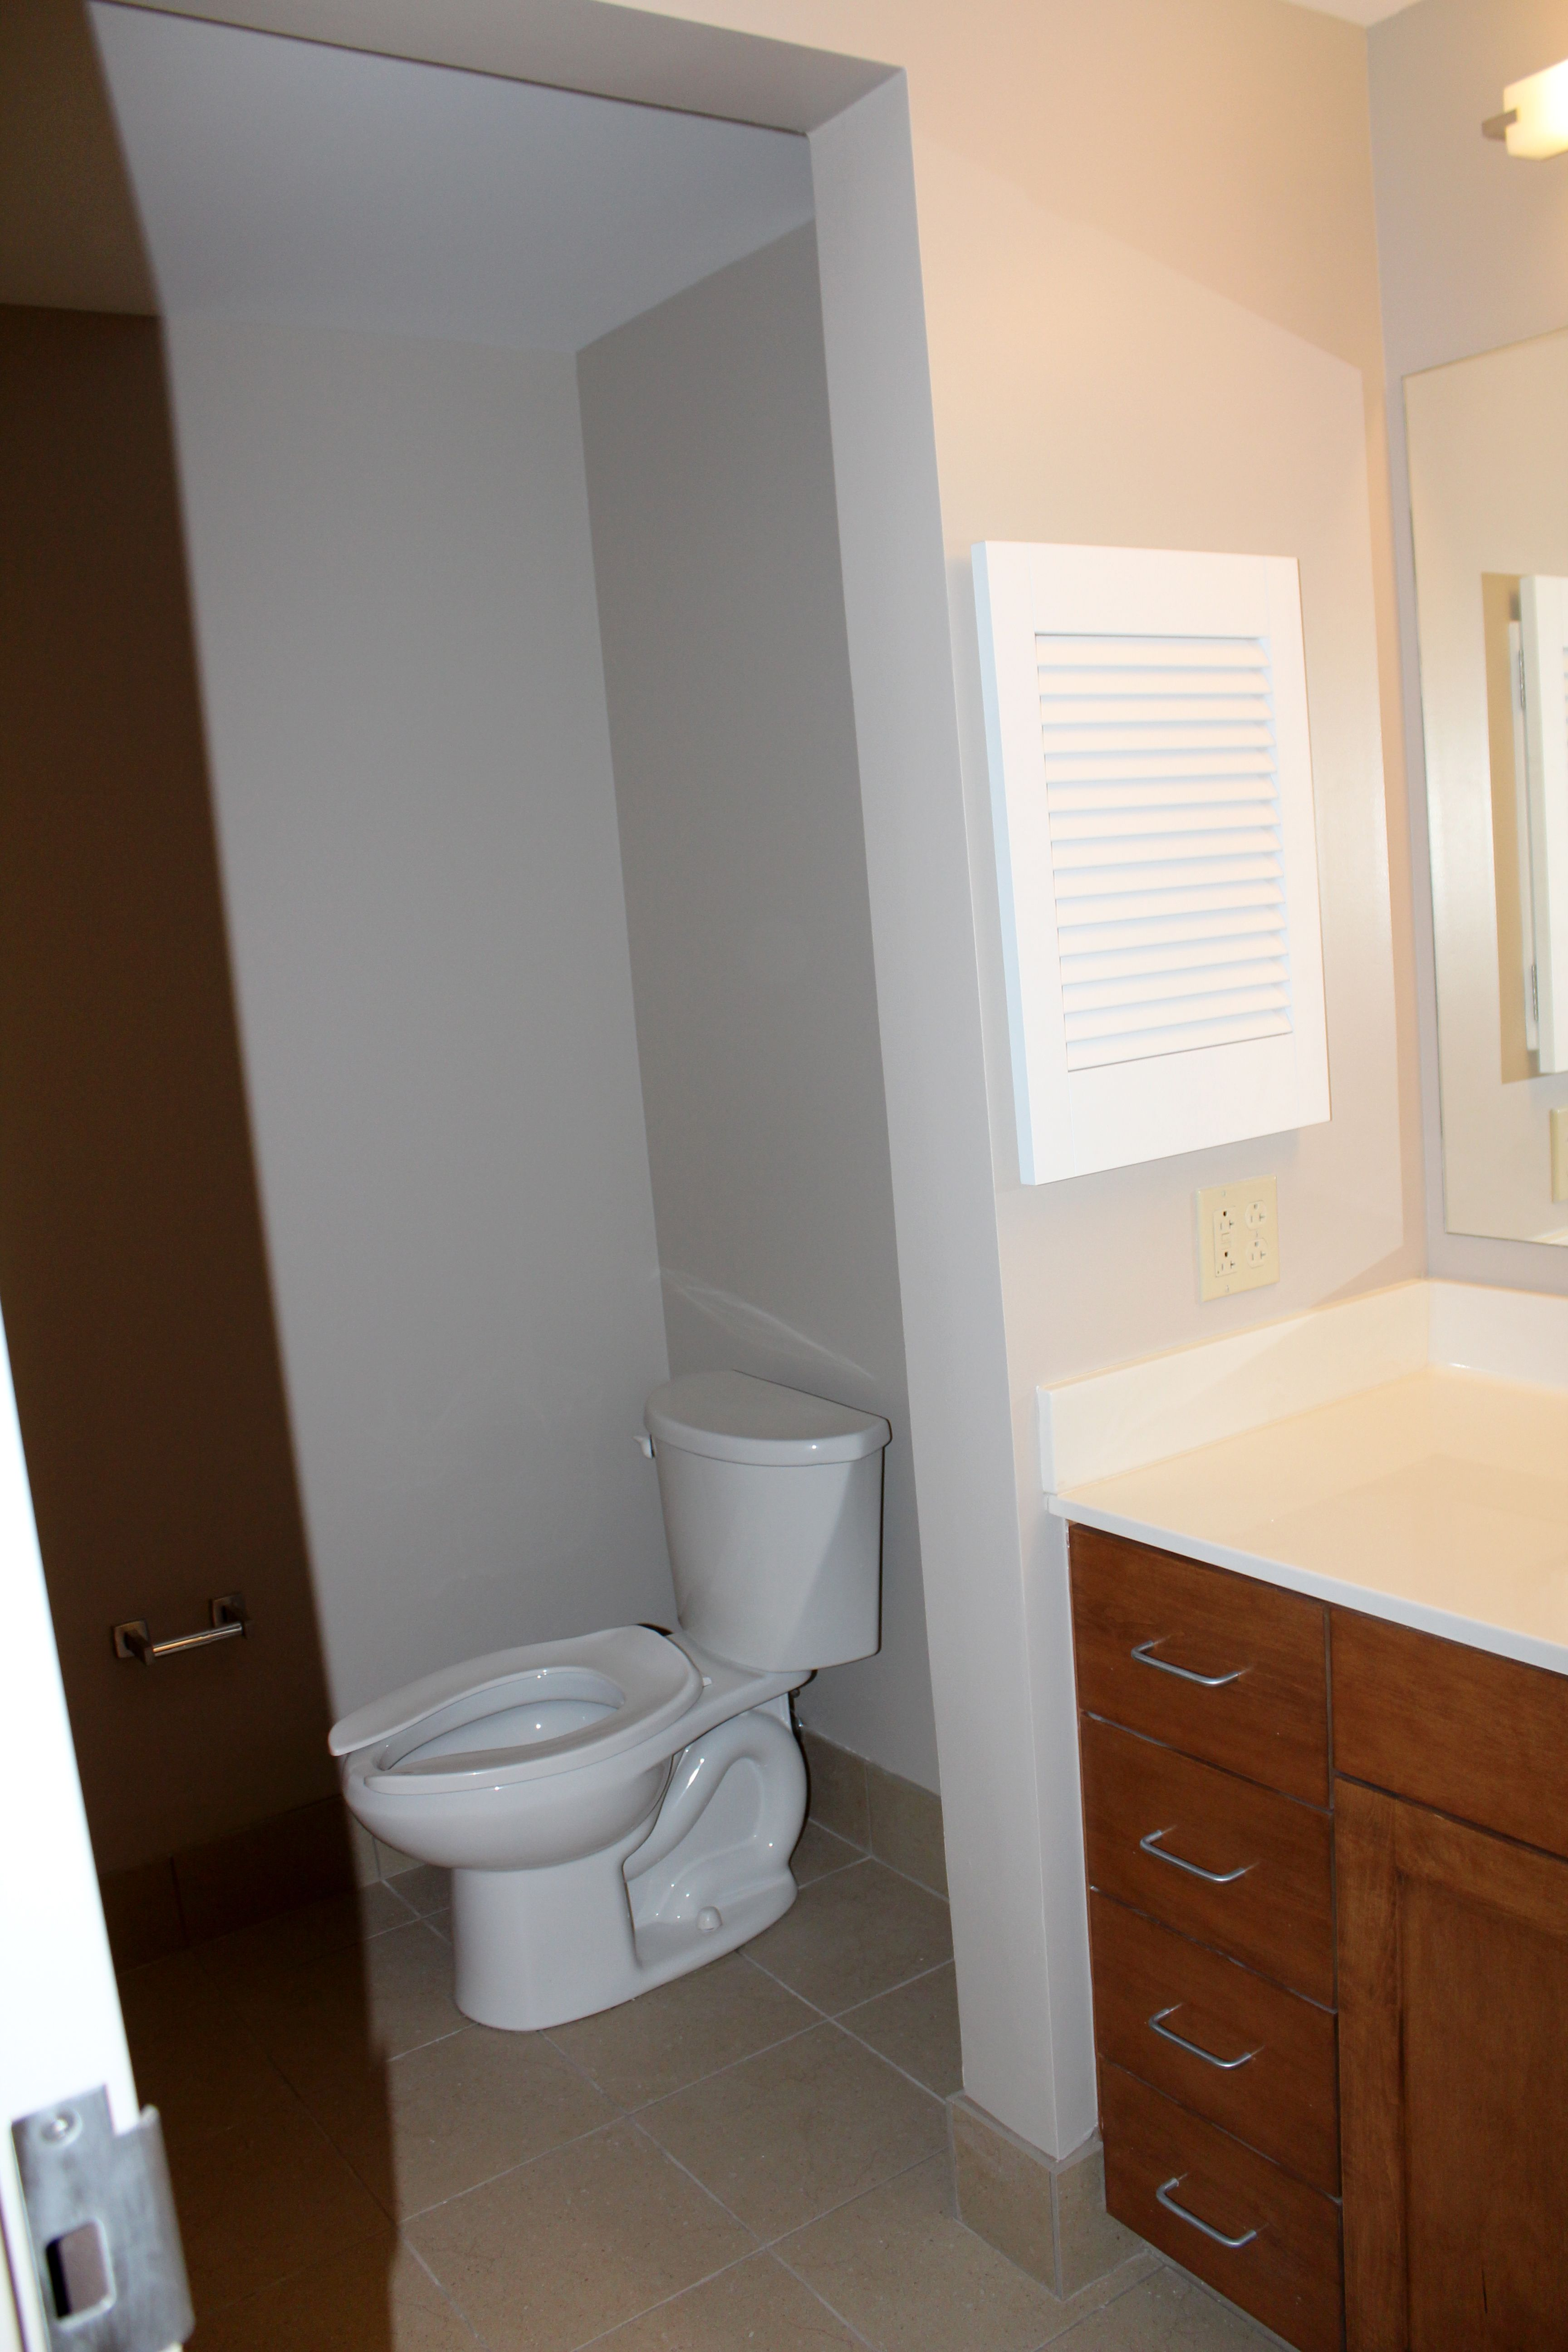 Each Suite Comes With Private Bathrooms Shared Between Suite Mates Texas Tech Dormdorms Decorcollege